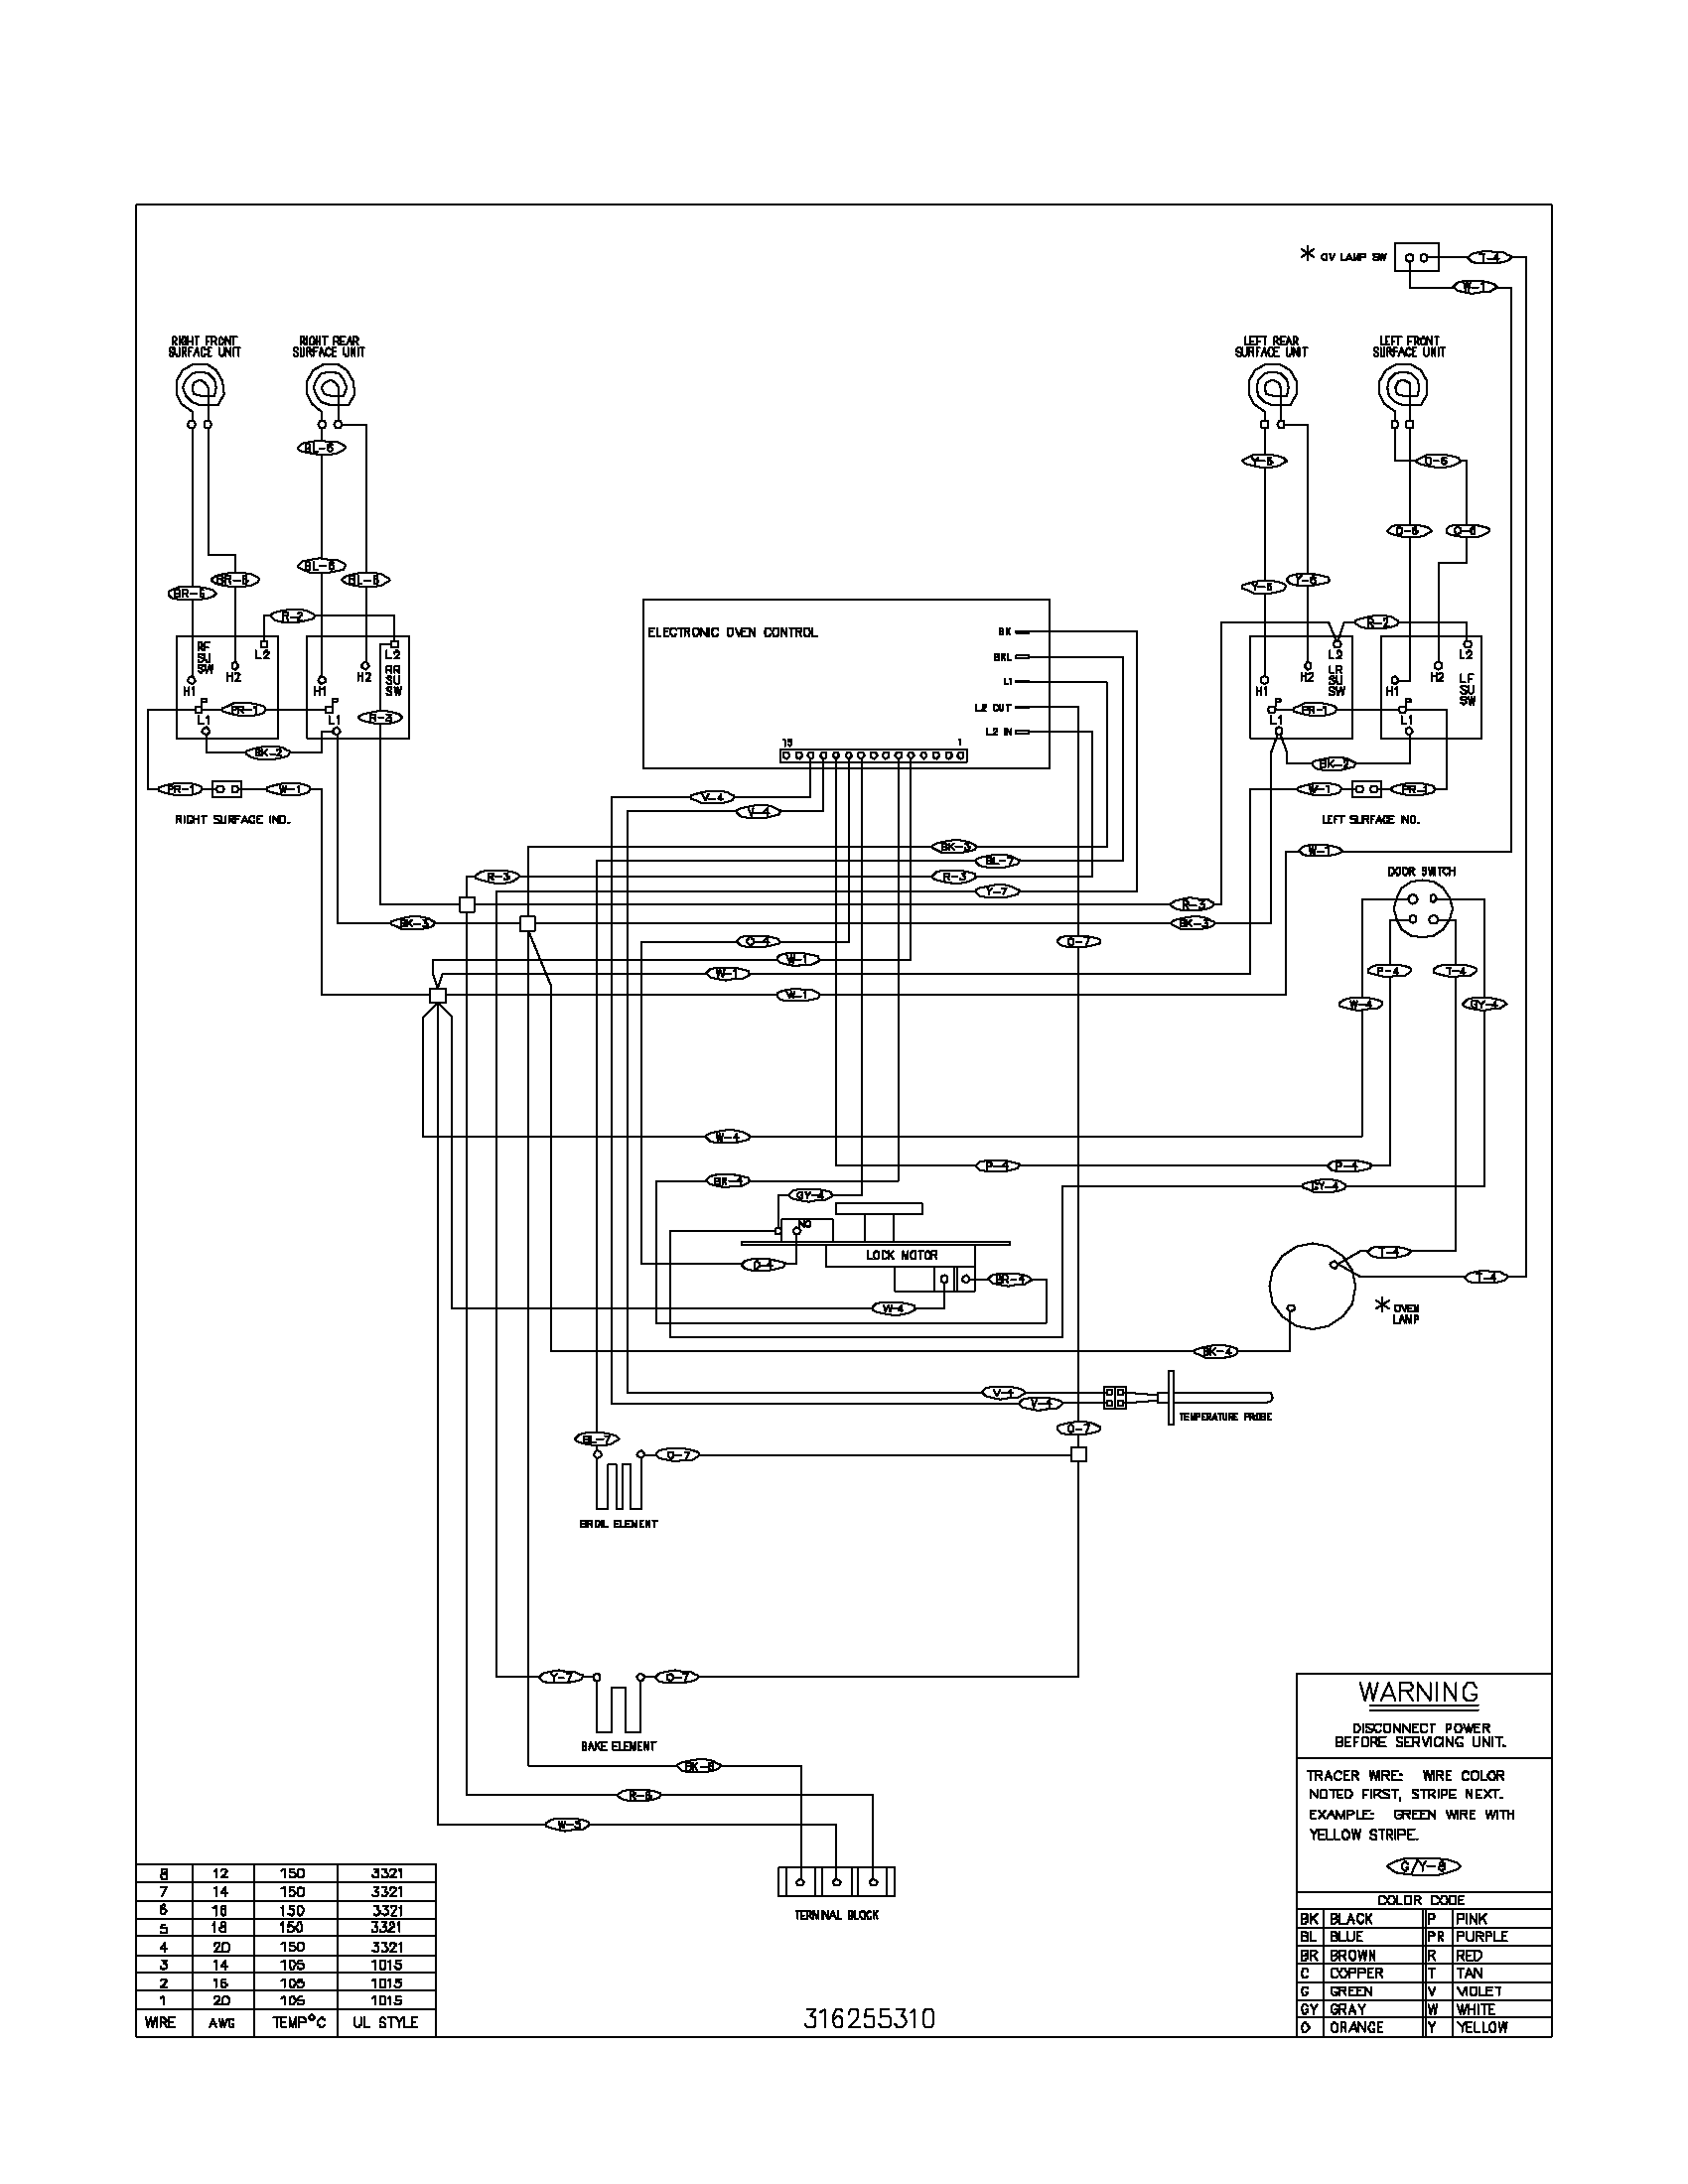 wiring diagram parts oven switch wiring diagram digital temperature controller circuit Simple Wiring Diagrams at gsmx.co